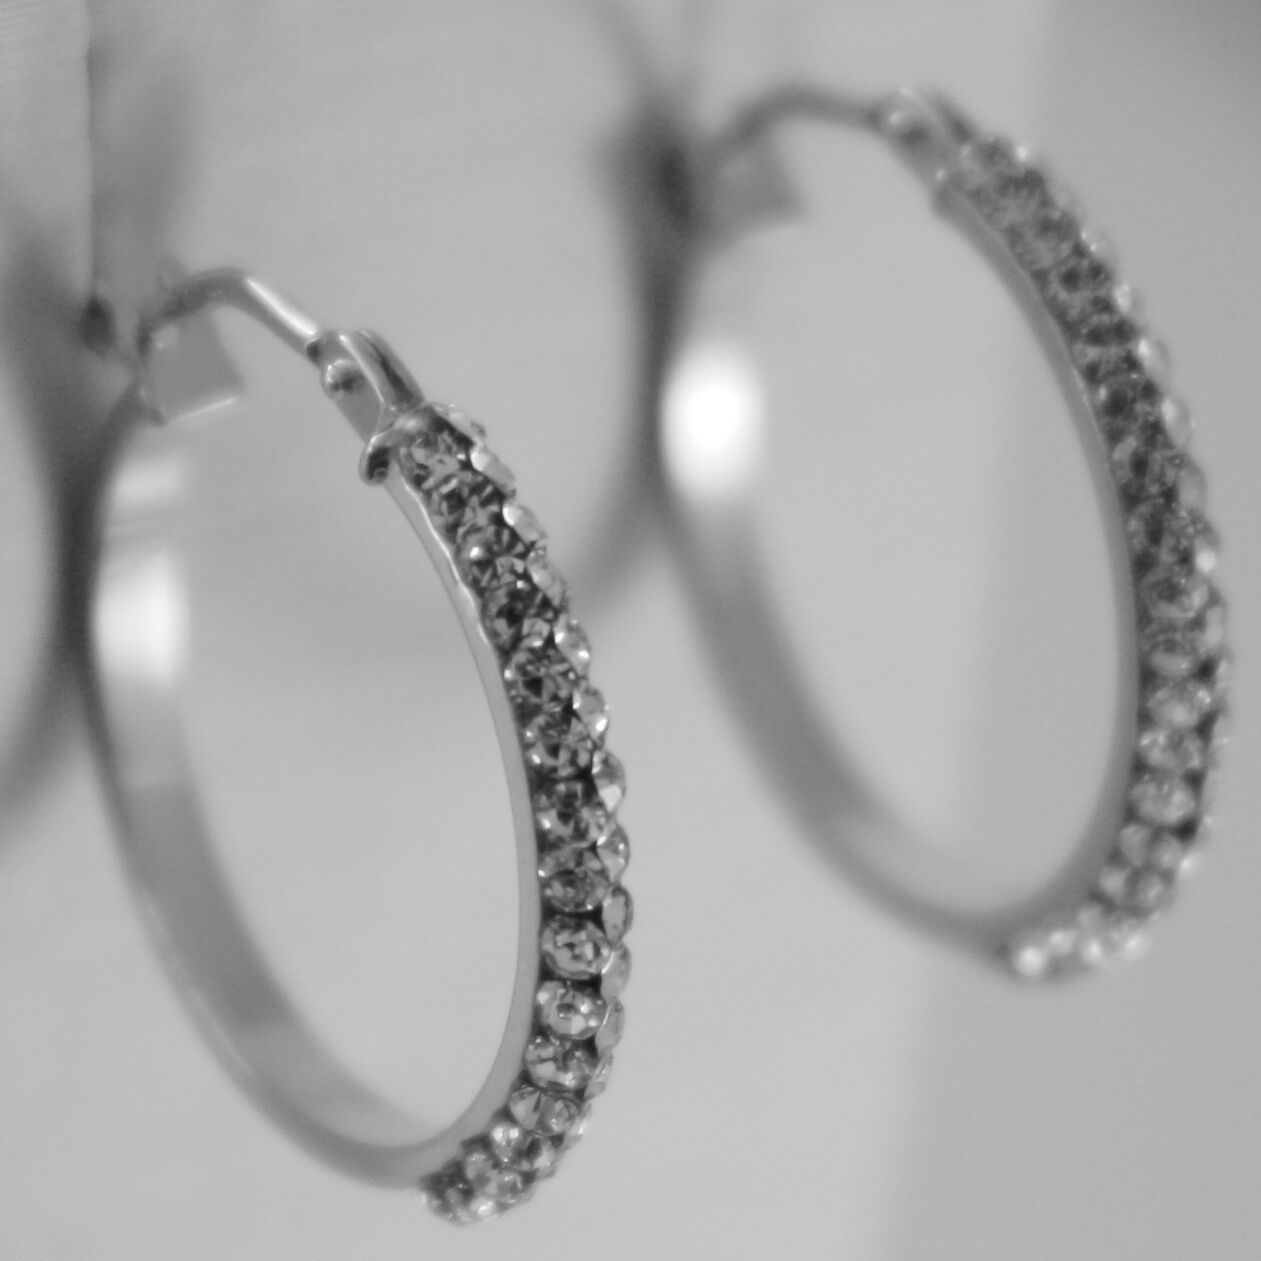 18K WHITE GOLD CIRCLE HOOPS EARRINGS WITH ZIRCONIA BRIGHT MADE IN ITALY